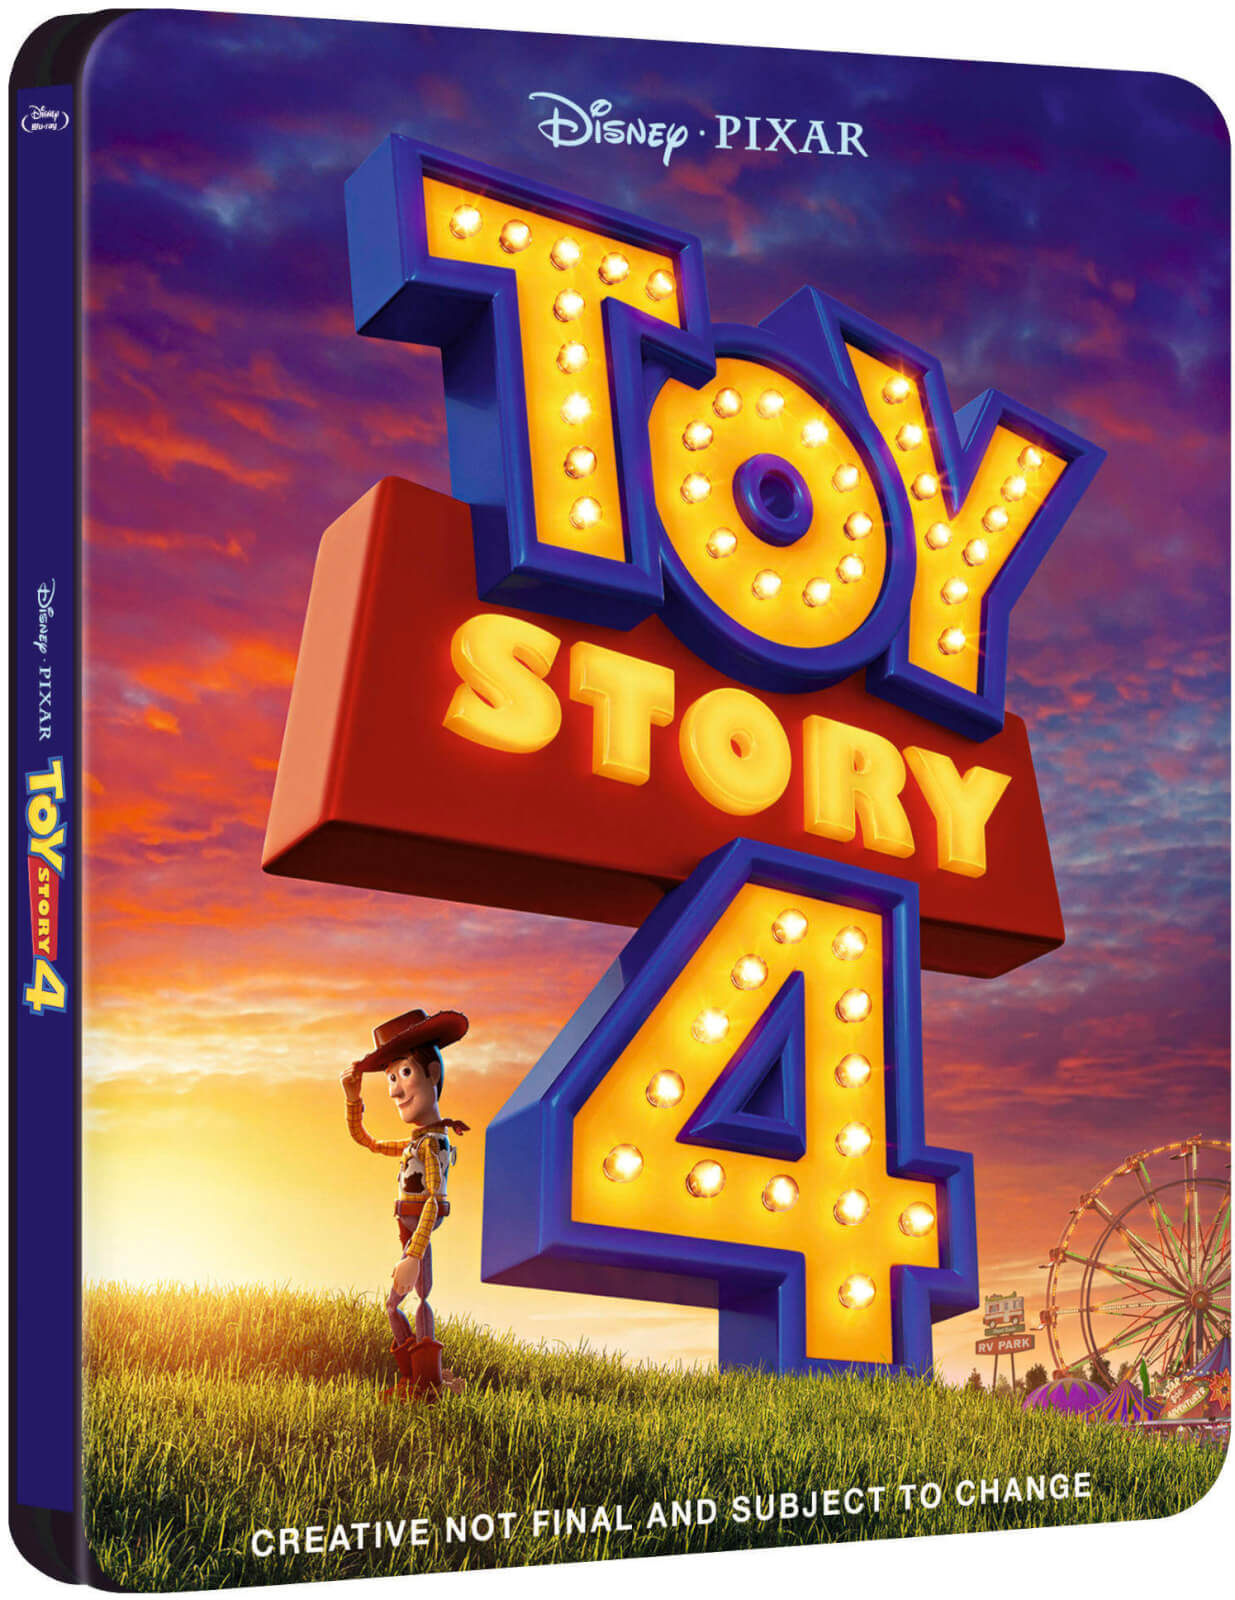 Toy Story 4 UK SteelBook temp art